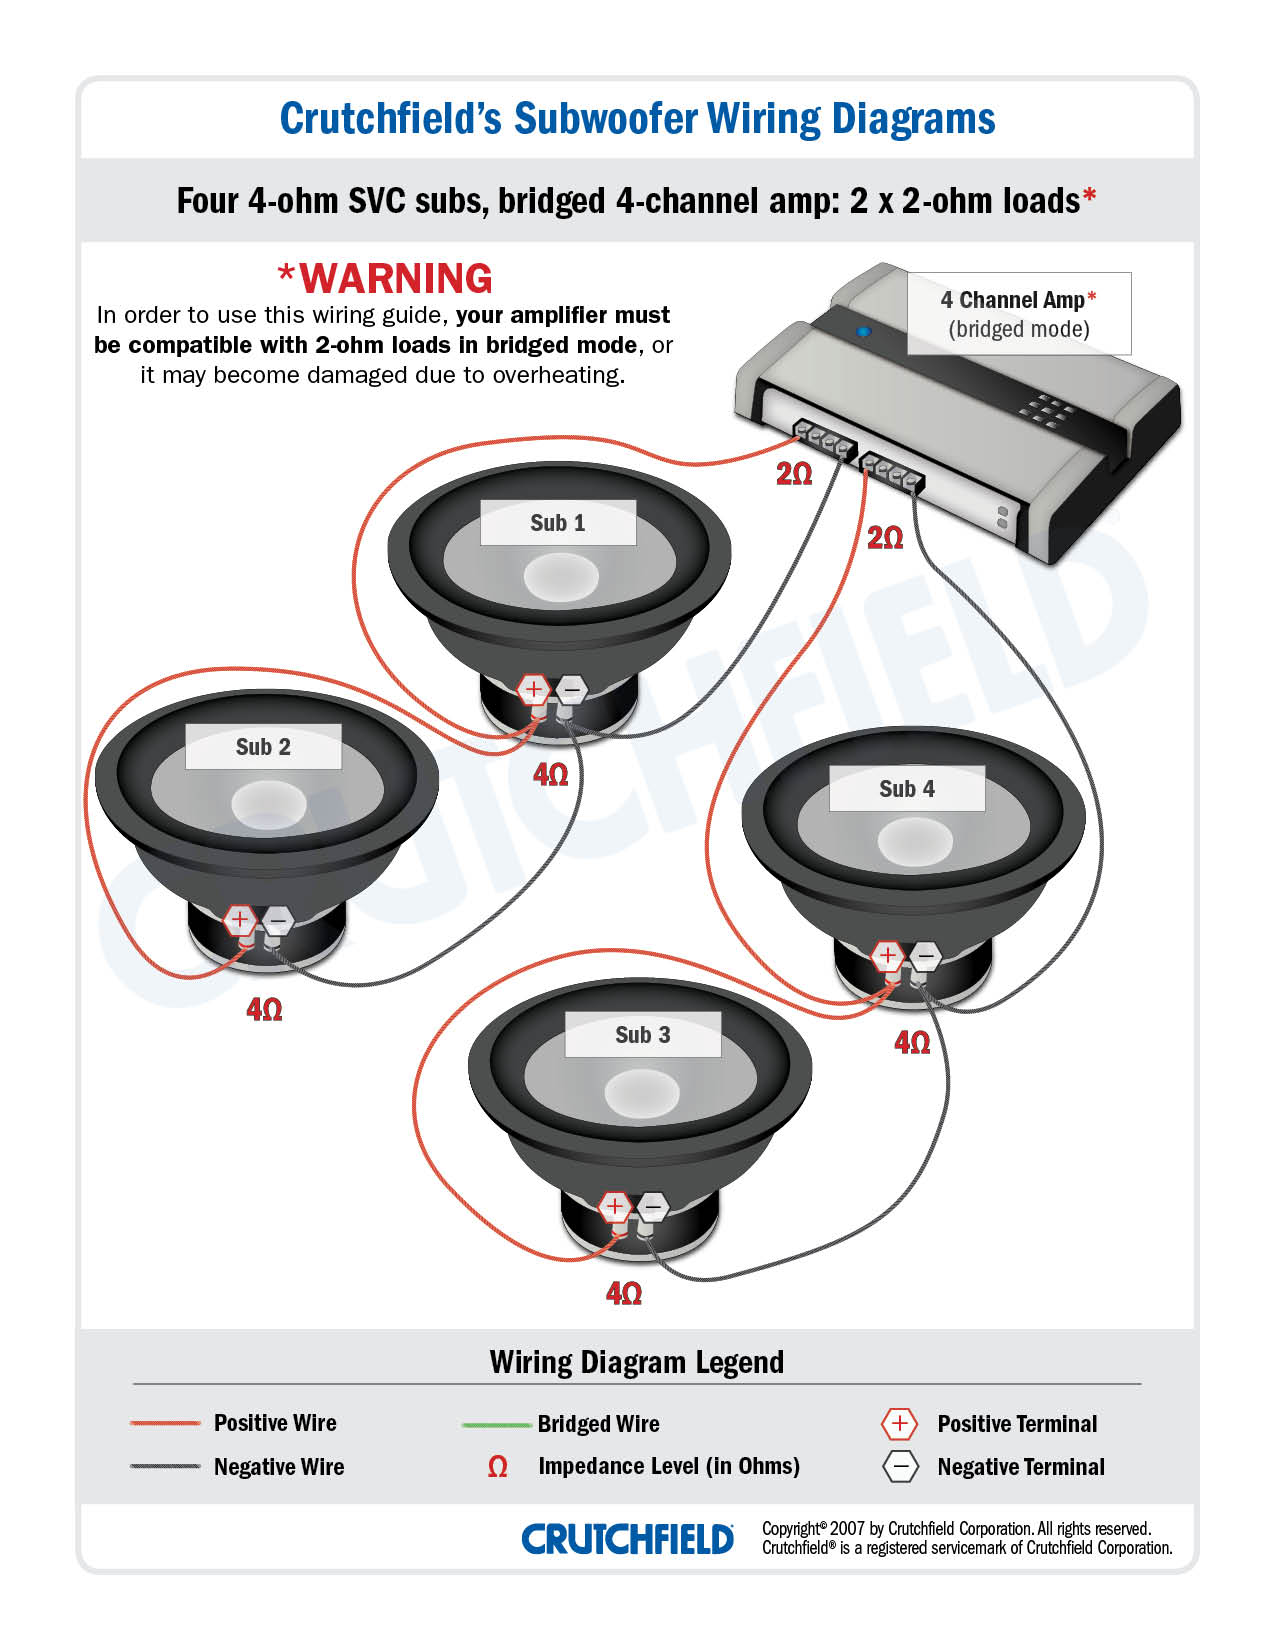 4 ohm subwoofer wiring diagram mono 3 dvc ad 7328  wiring two dvc 4 ohm subs to ohms schematic wiring  wiring two dvc 4 ohm subs to ohms